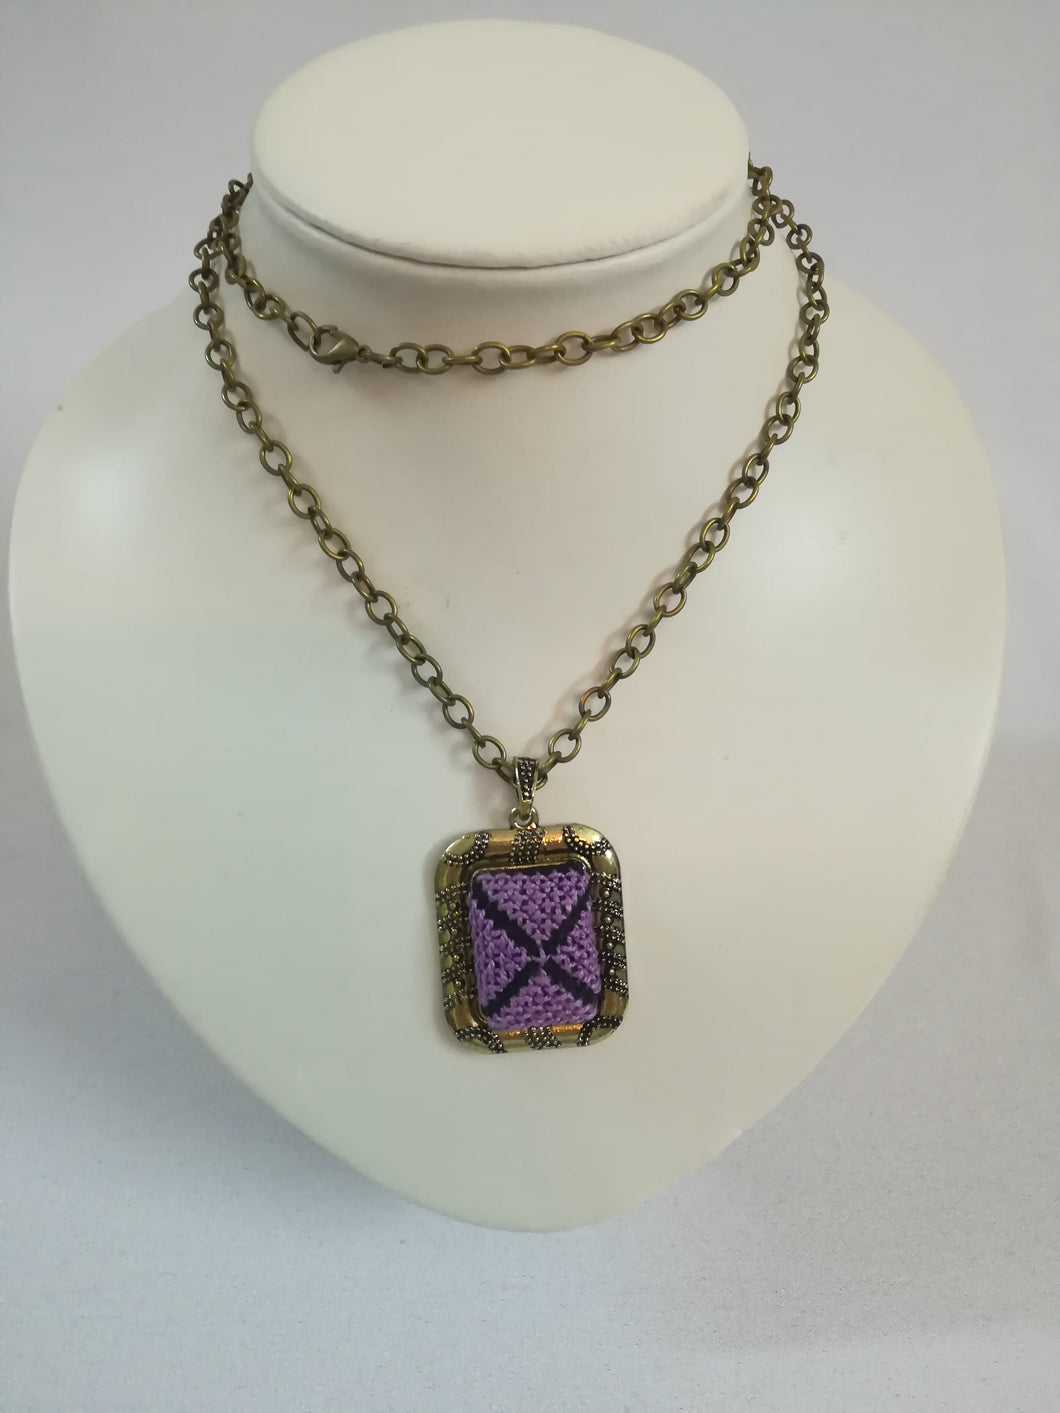 Golden color necklace with purple embroidered pendant - Falastini Brand